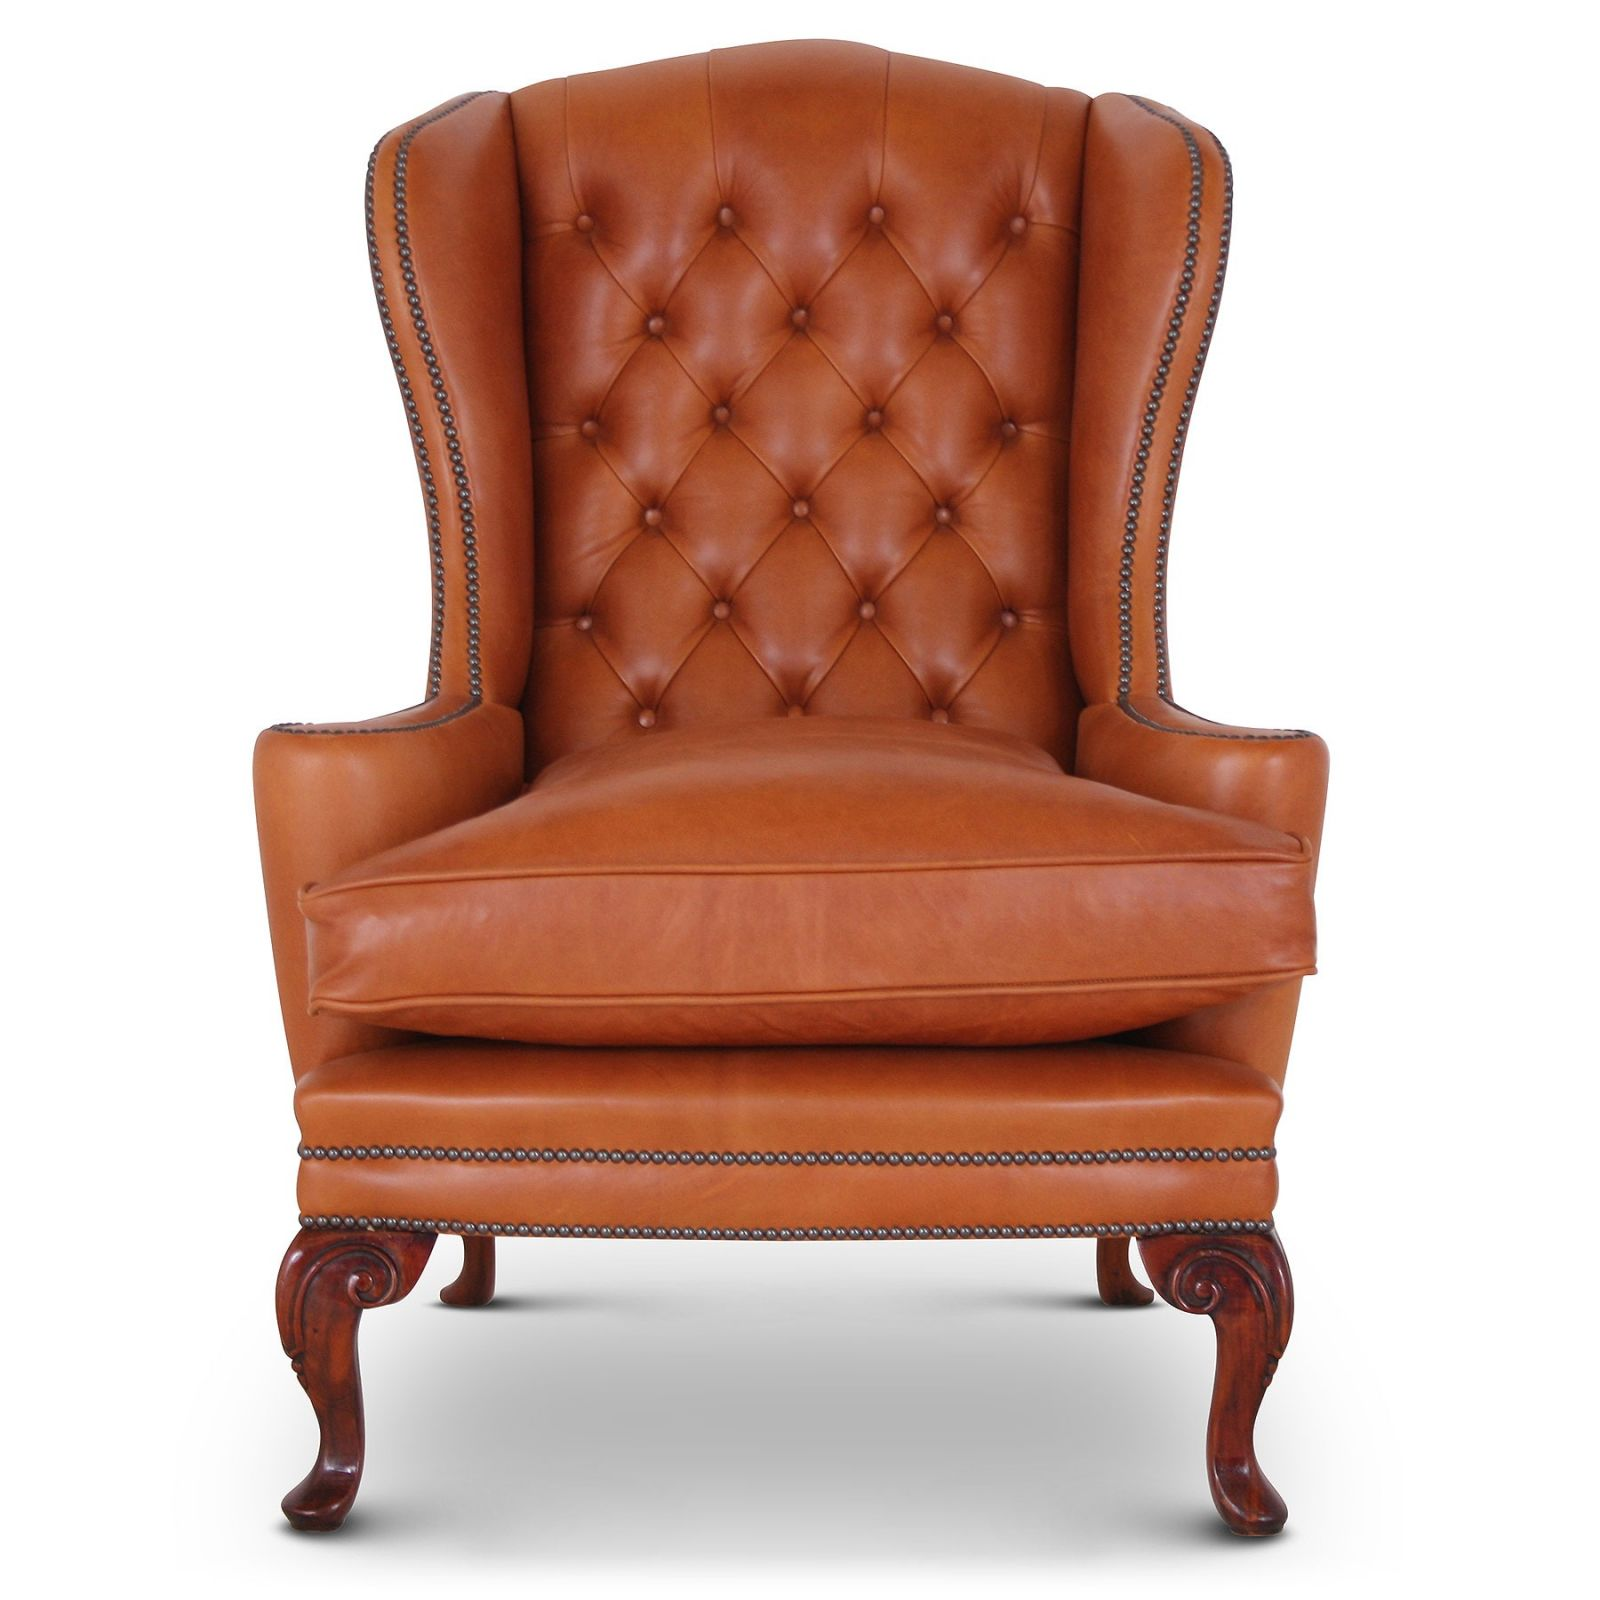 Melbury Tan Leather Wing Chair